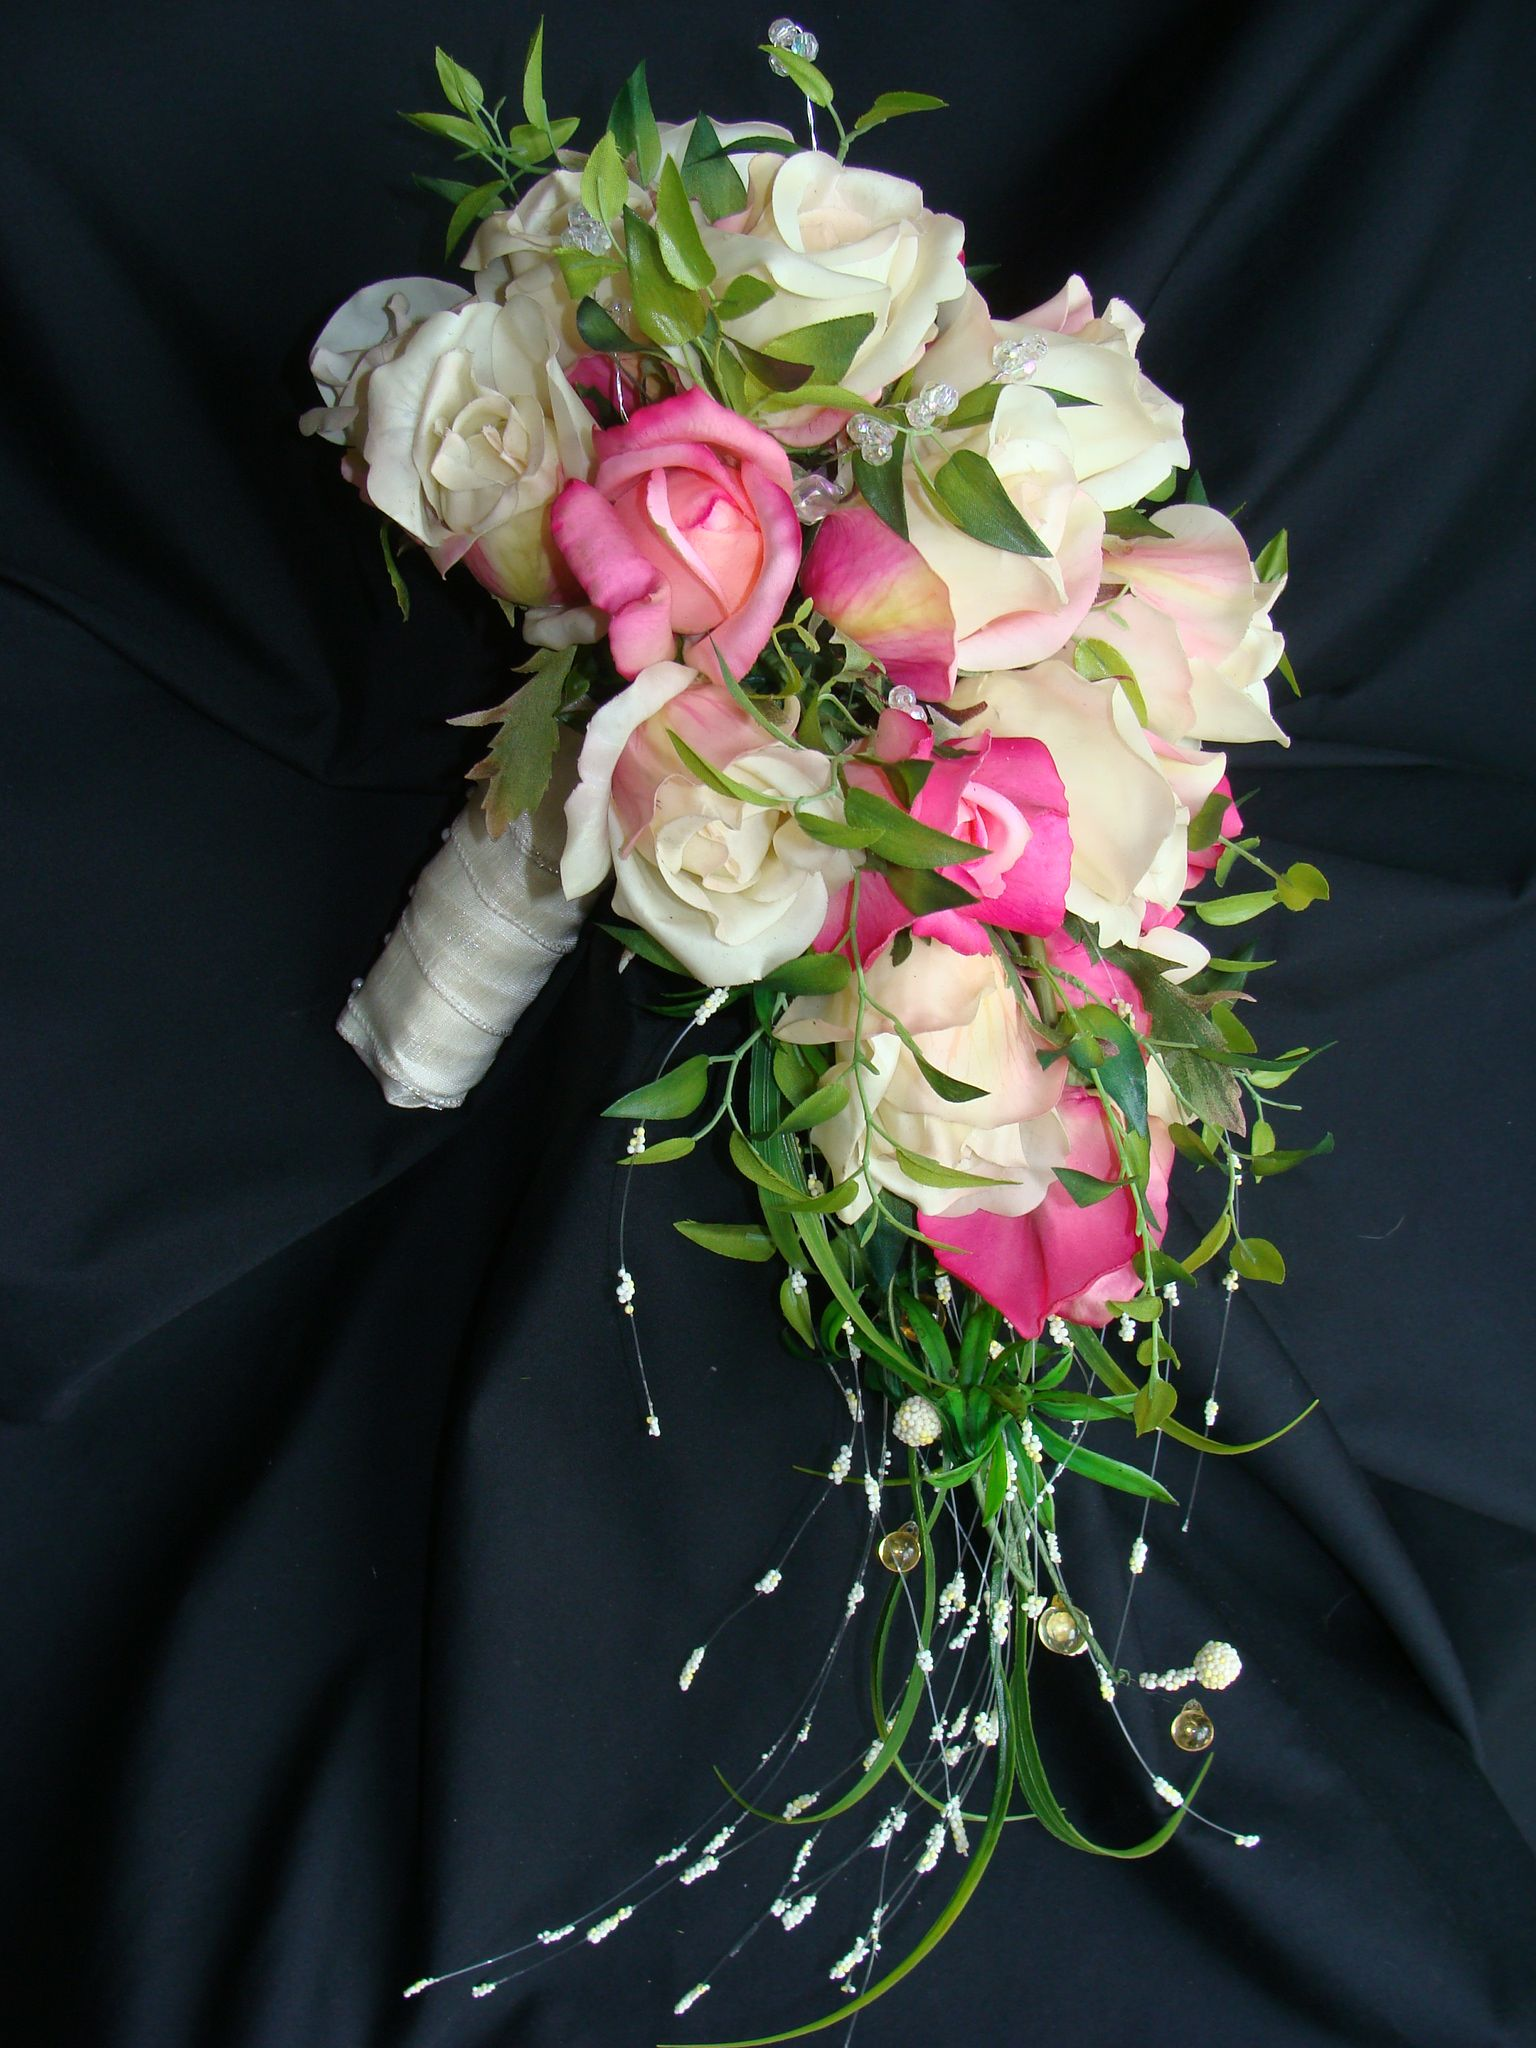 Make Your Own Bridal Flowers & Wedding Bouquets | Bouquet flowers ...